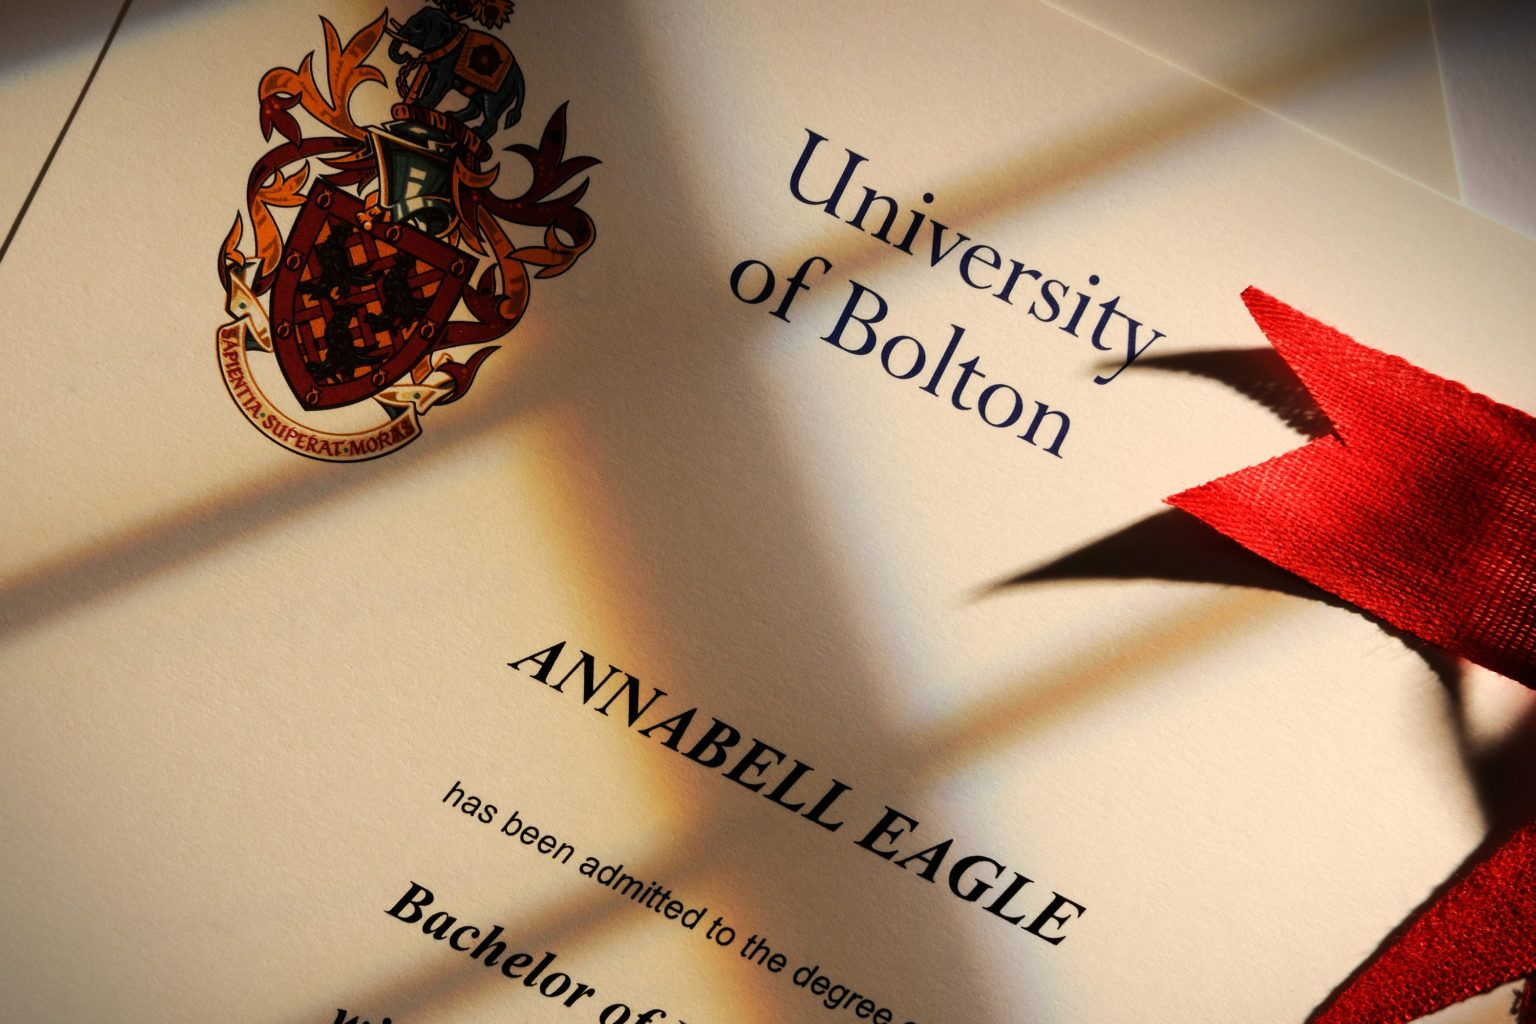 University of Bolton Degree Certificate